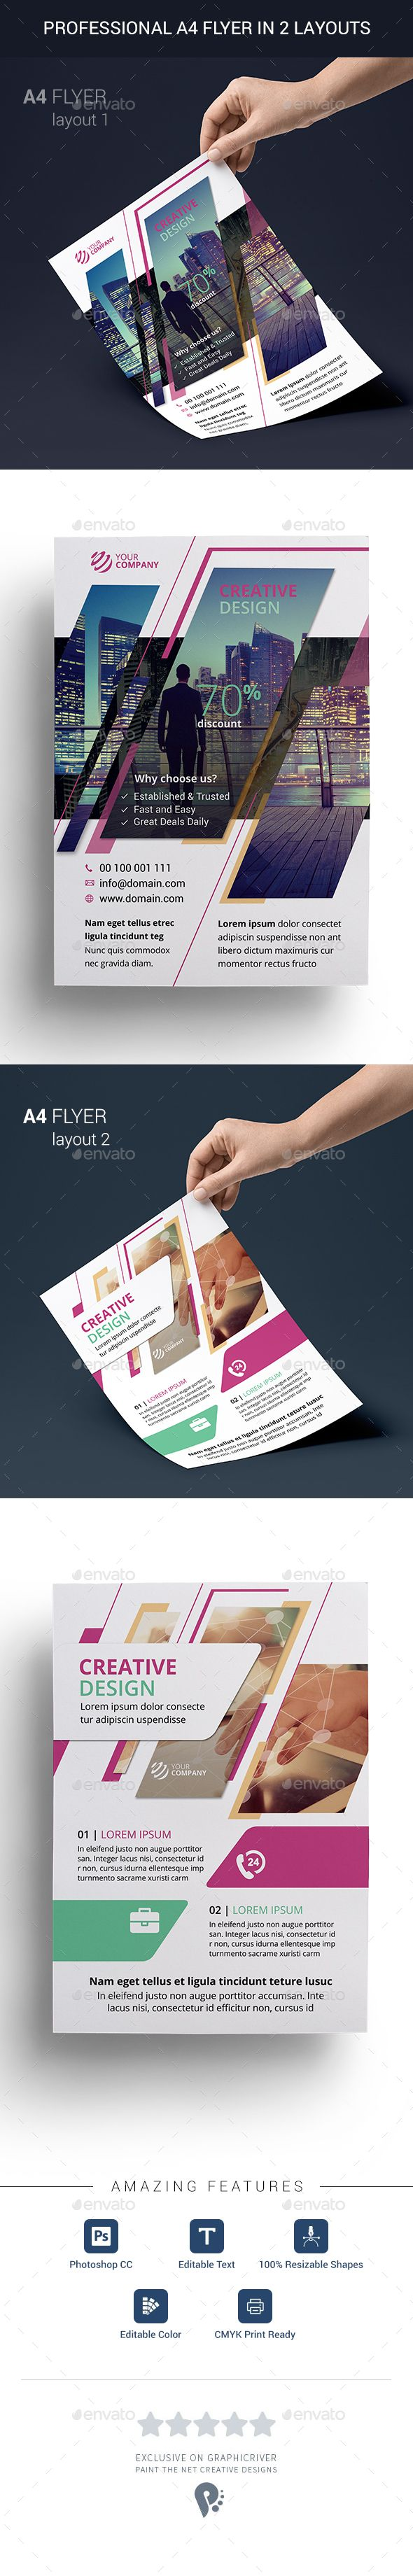 professional multi purpose a4 flyer in 2 layouts flyer template